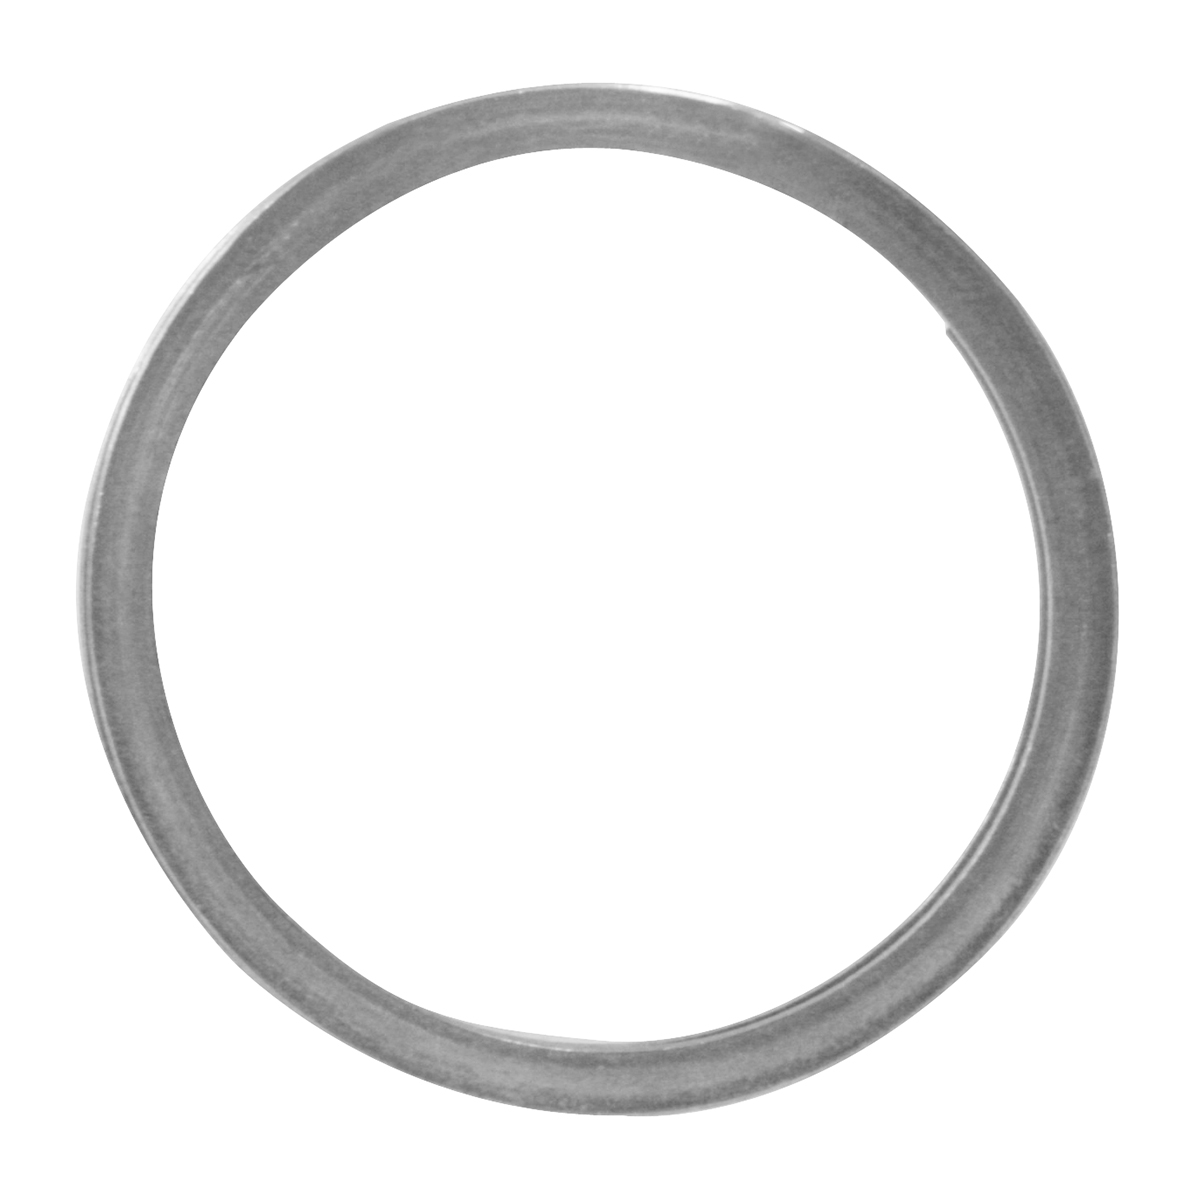 Washer for Mounting Beauty Ring